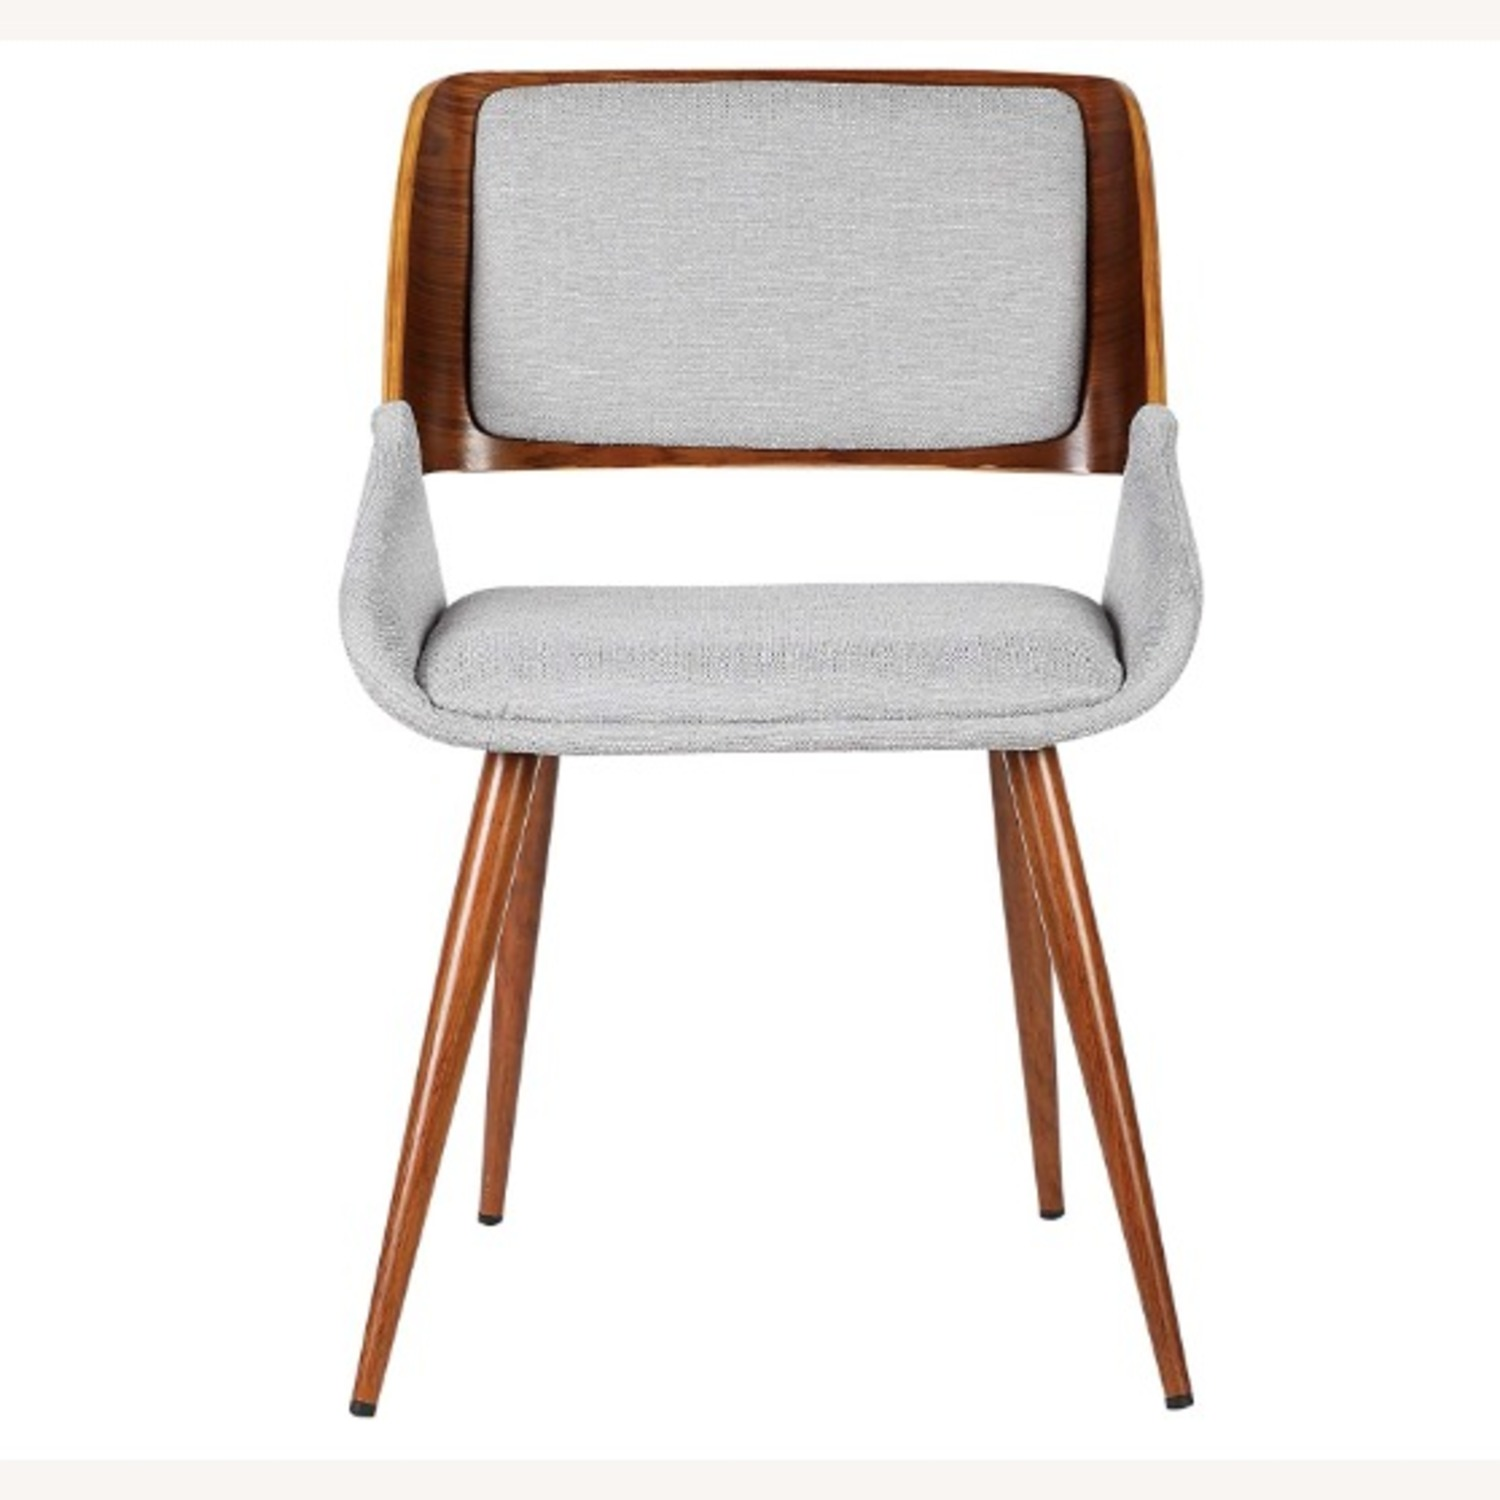 Mid Century Modern Wooden Grey Dining Chair - image-2